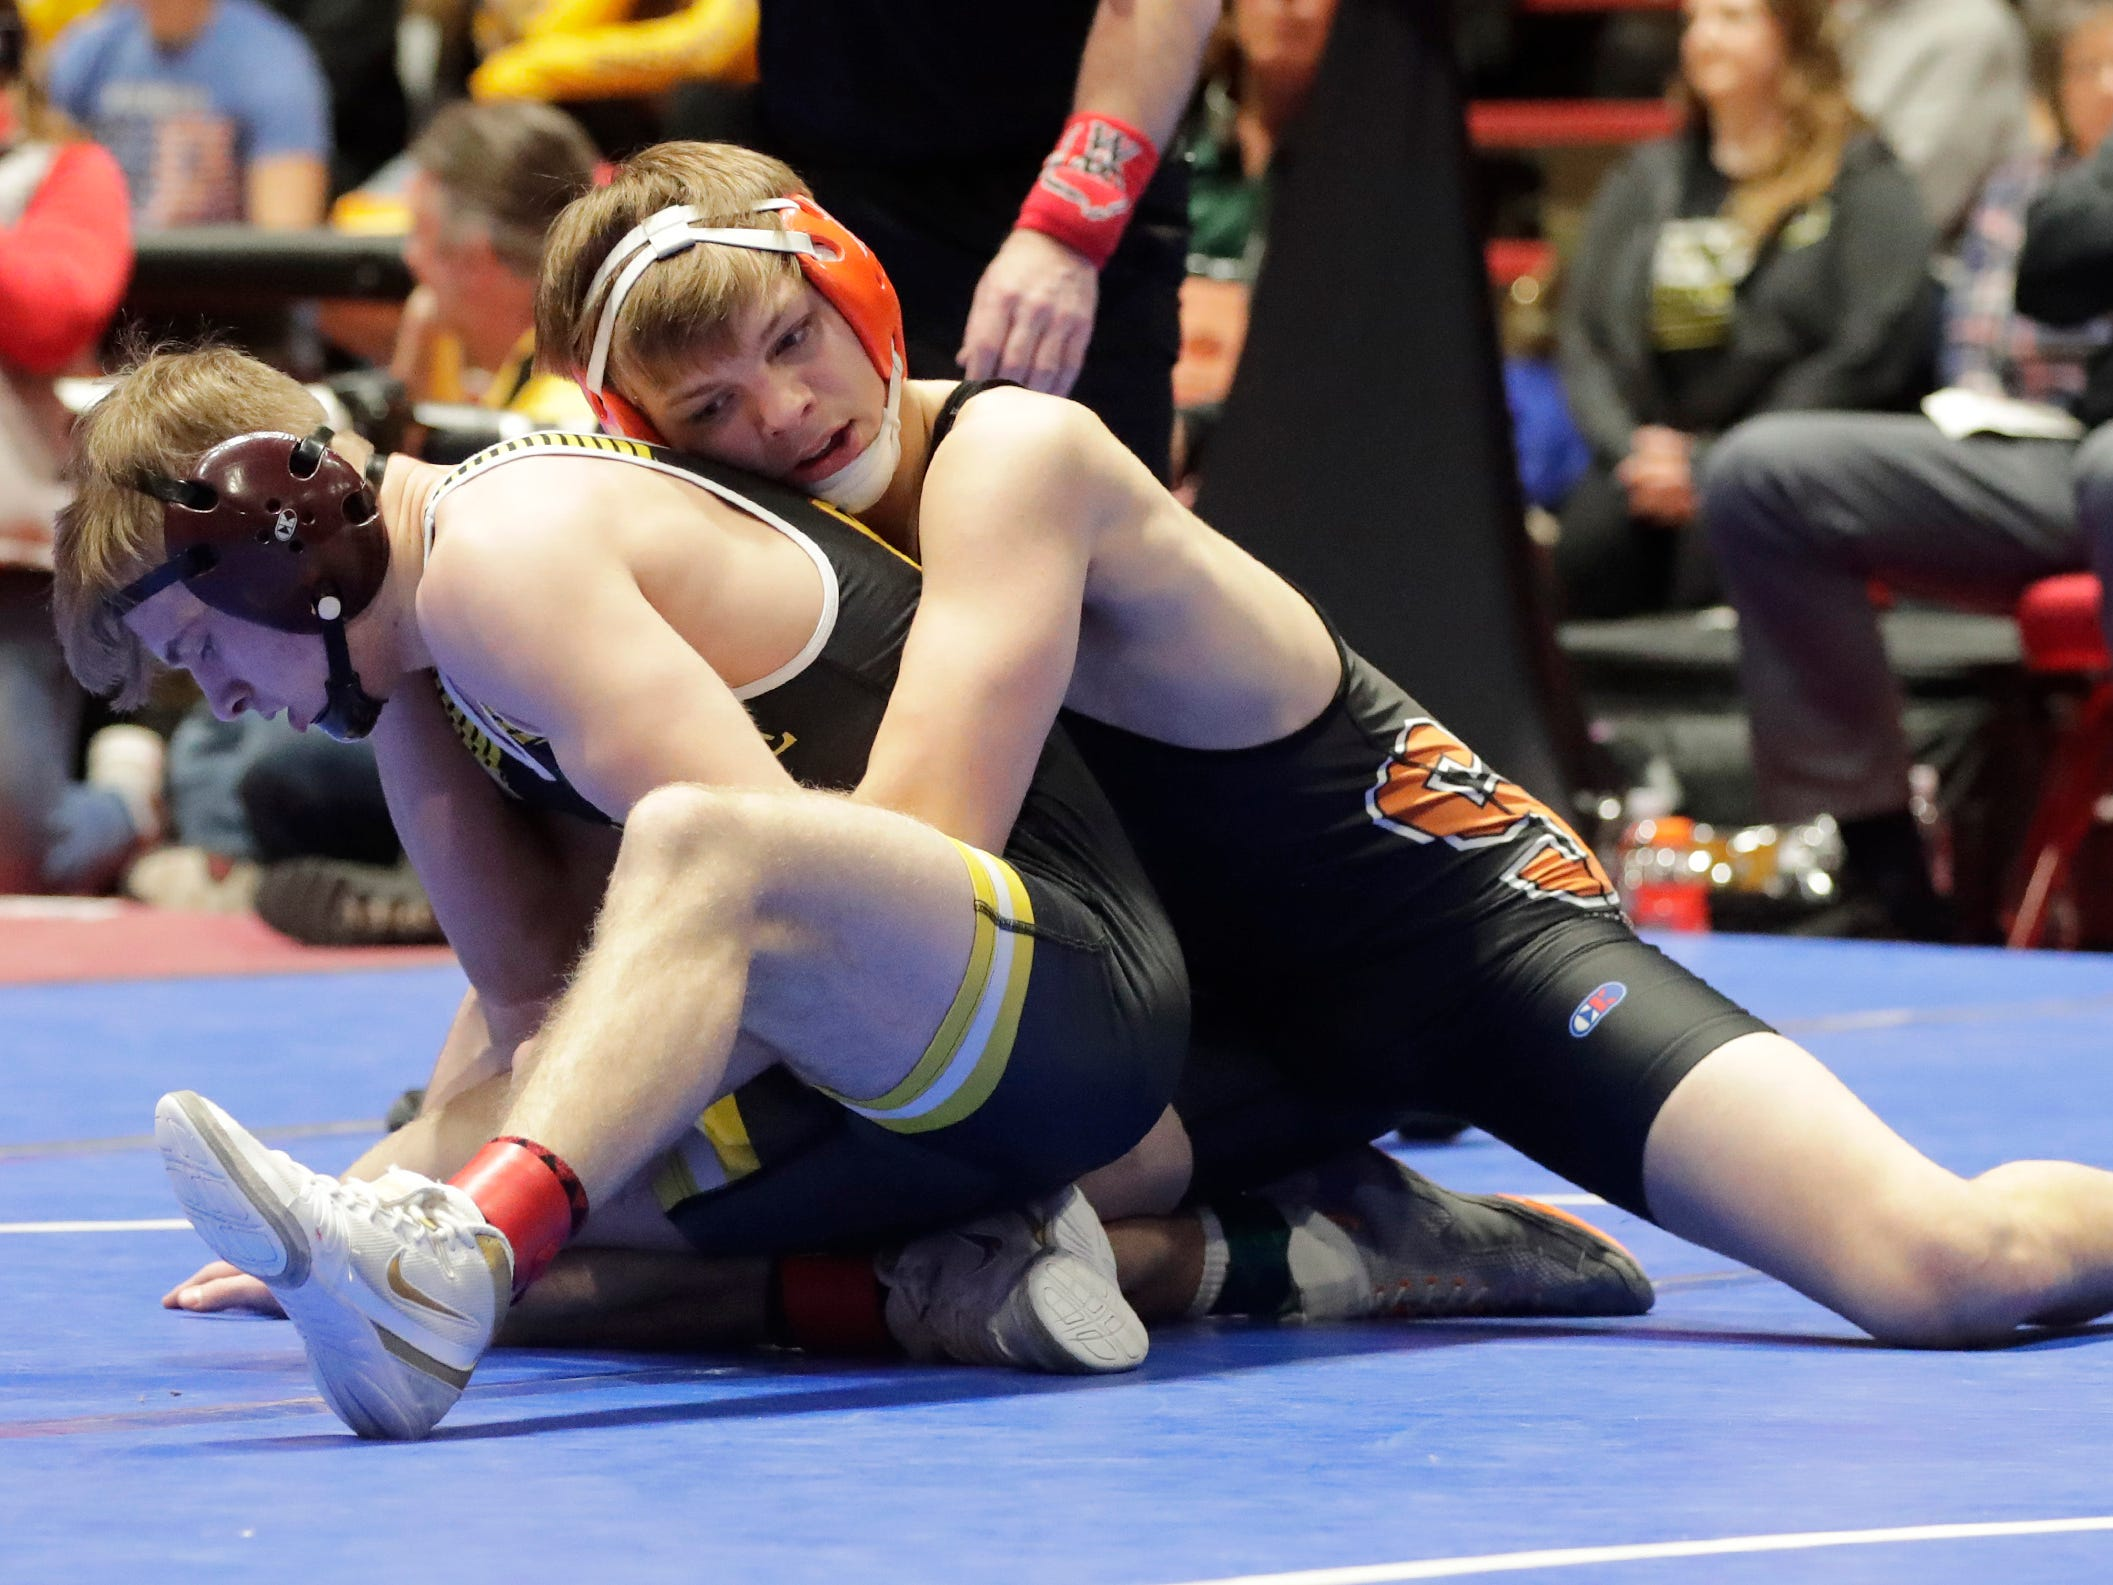 Stratford's Jacob Heiden, right, stretches out to wrestle Fennimore's Aiden Nutter in the 138-pound class, Saturday, March 2, 2019, in Madison, Wis.